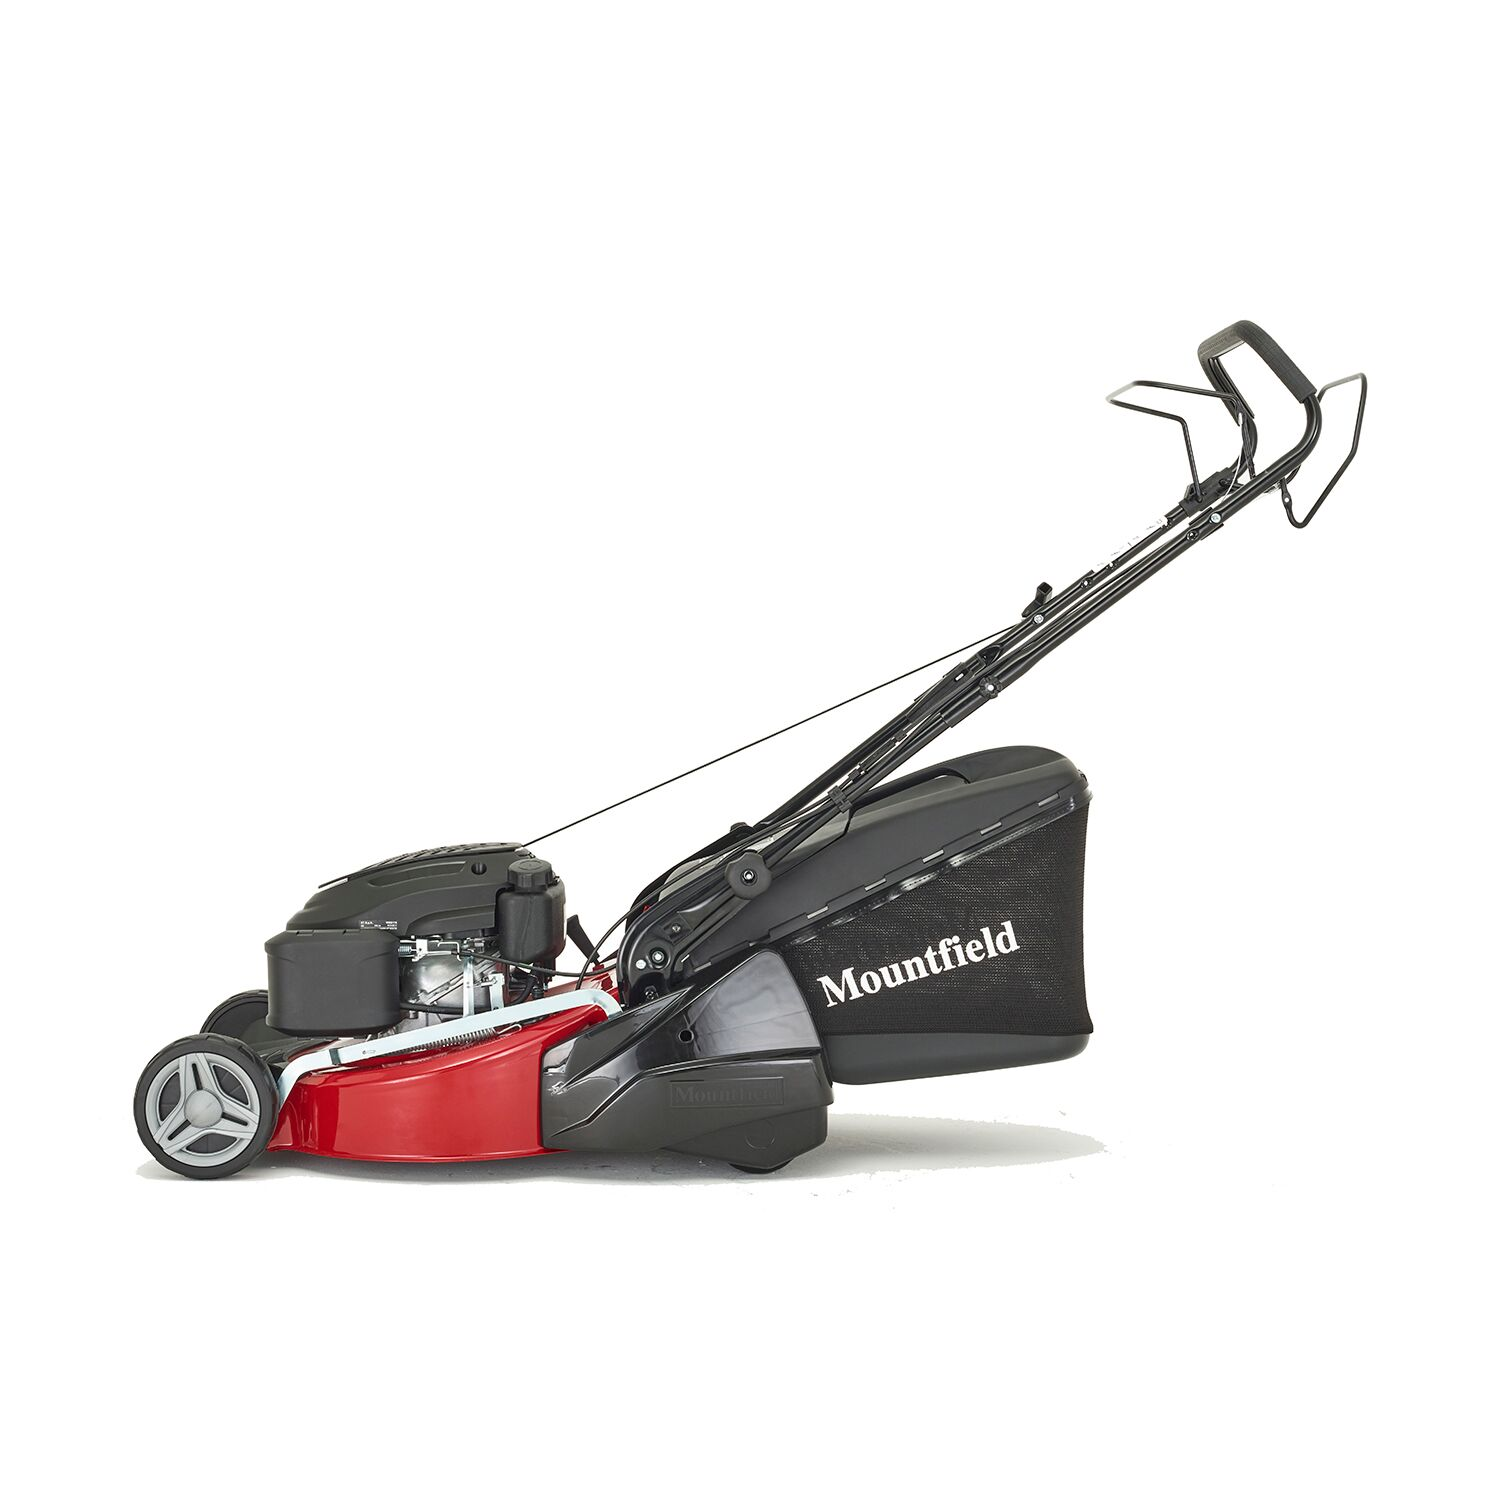 Mountfield S461R PD | Quality Discount Mowers